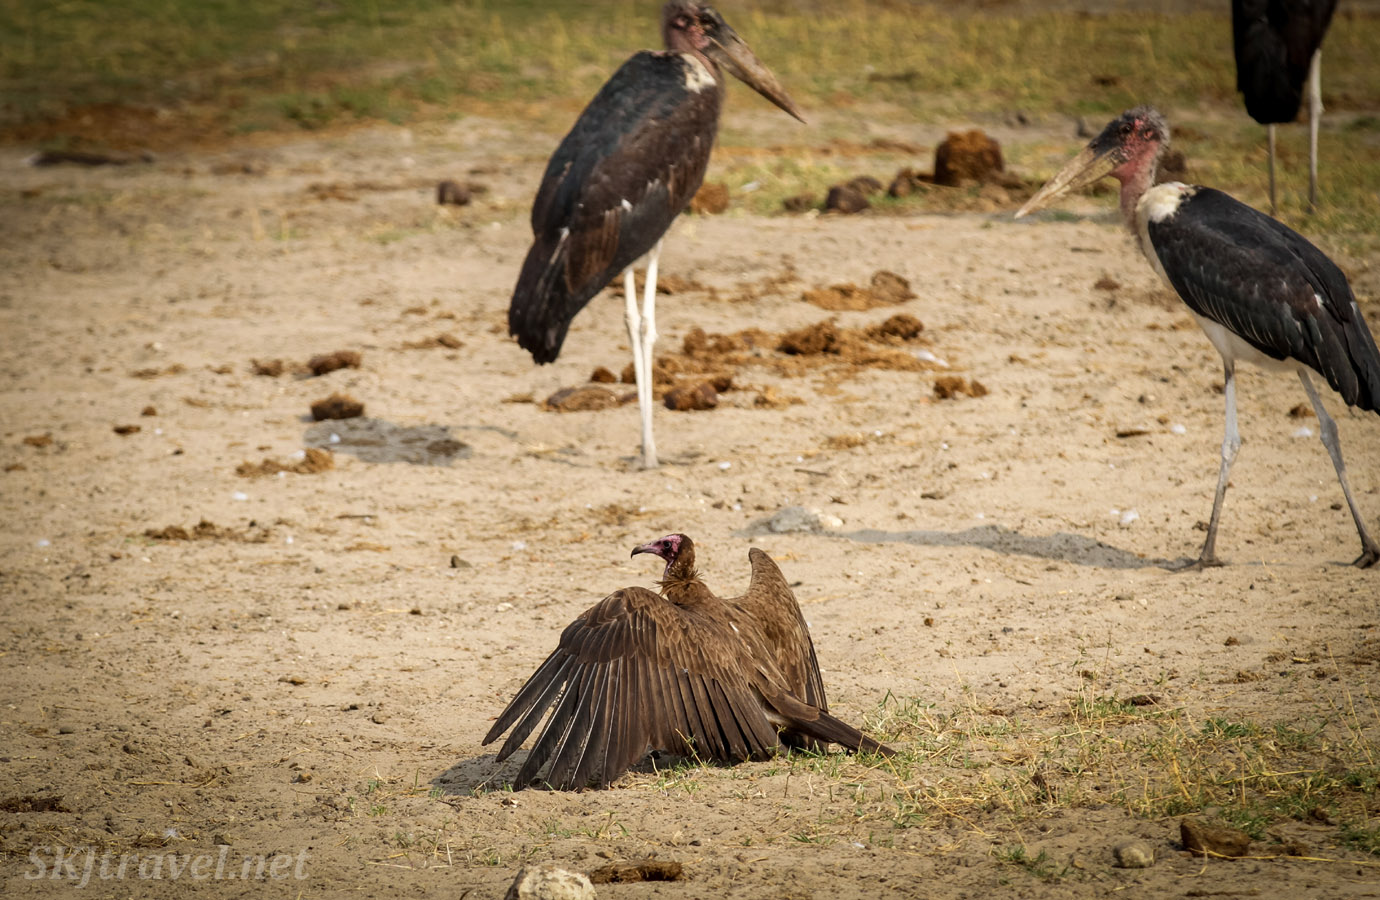 Lappet faced vulture airing our his wings near marabou storks near dusk. Chobe National Park, Okavango Delta, Botswana.